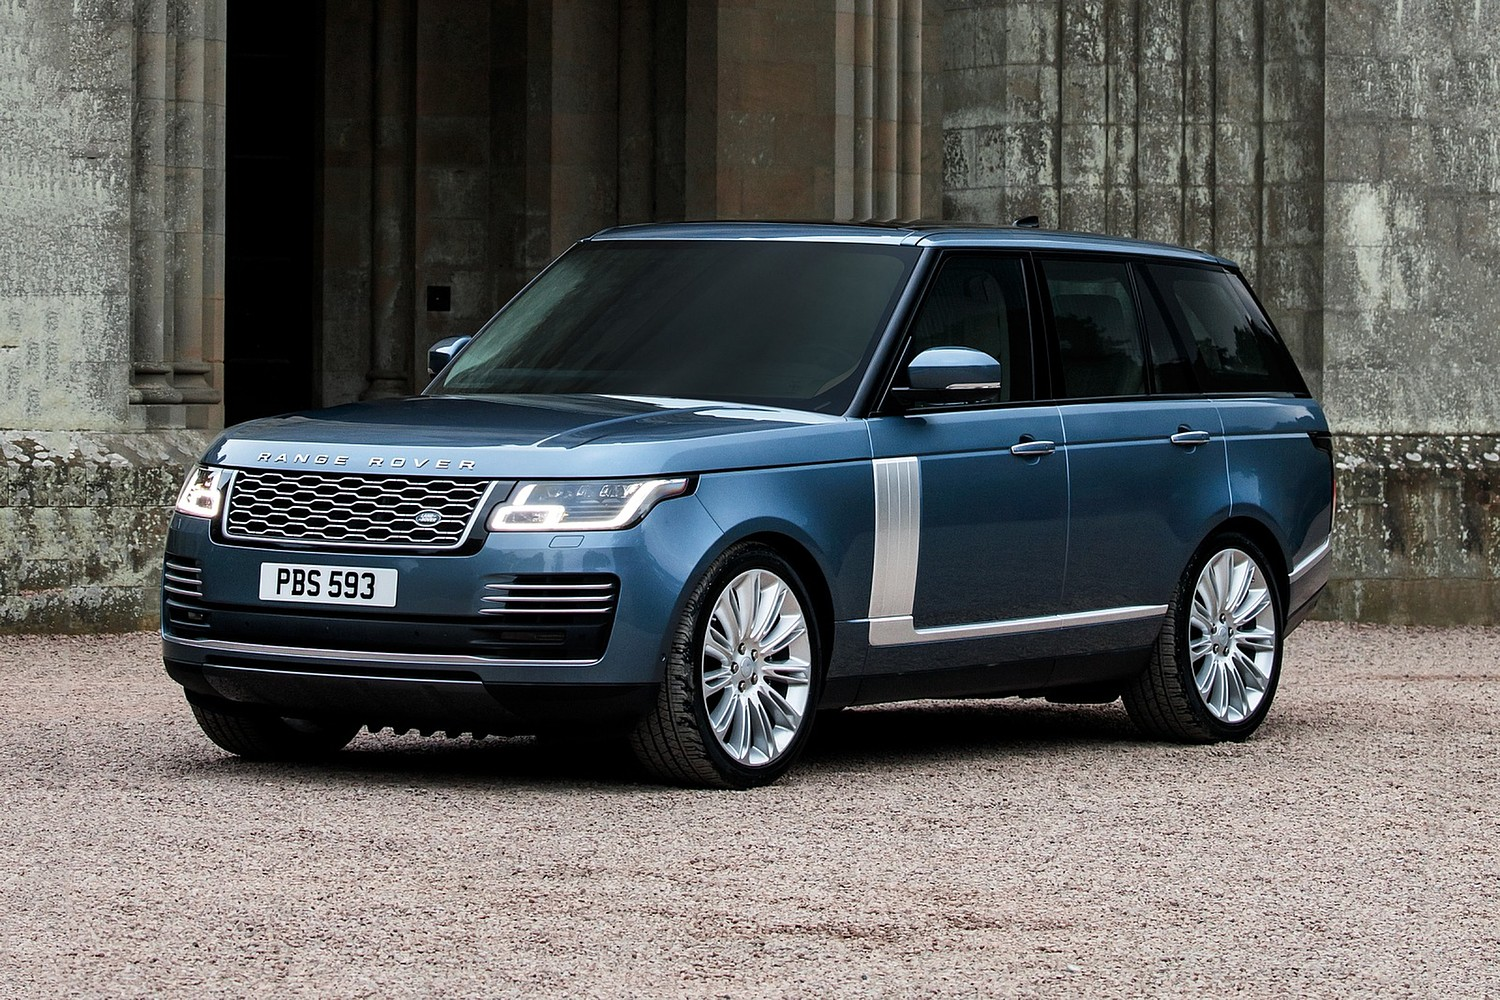 2018 Land Rover Range Rover Autobiography 4dr SUV Exterior Shown